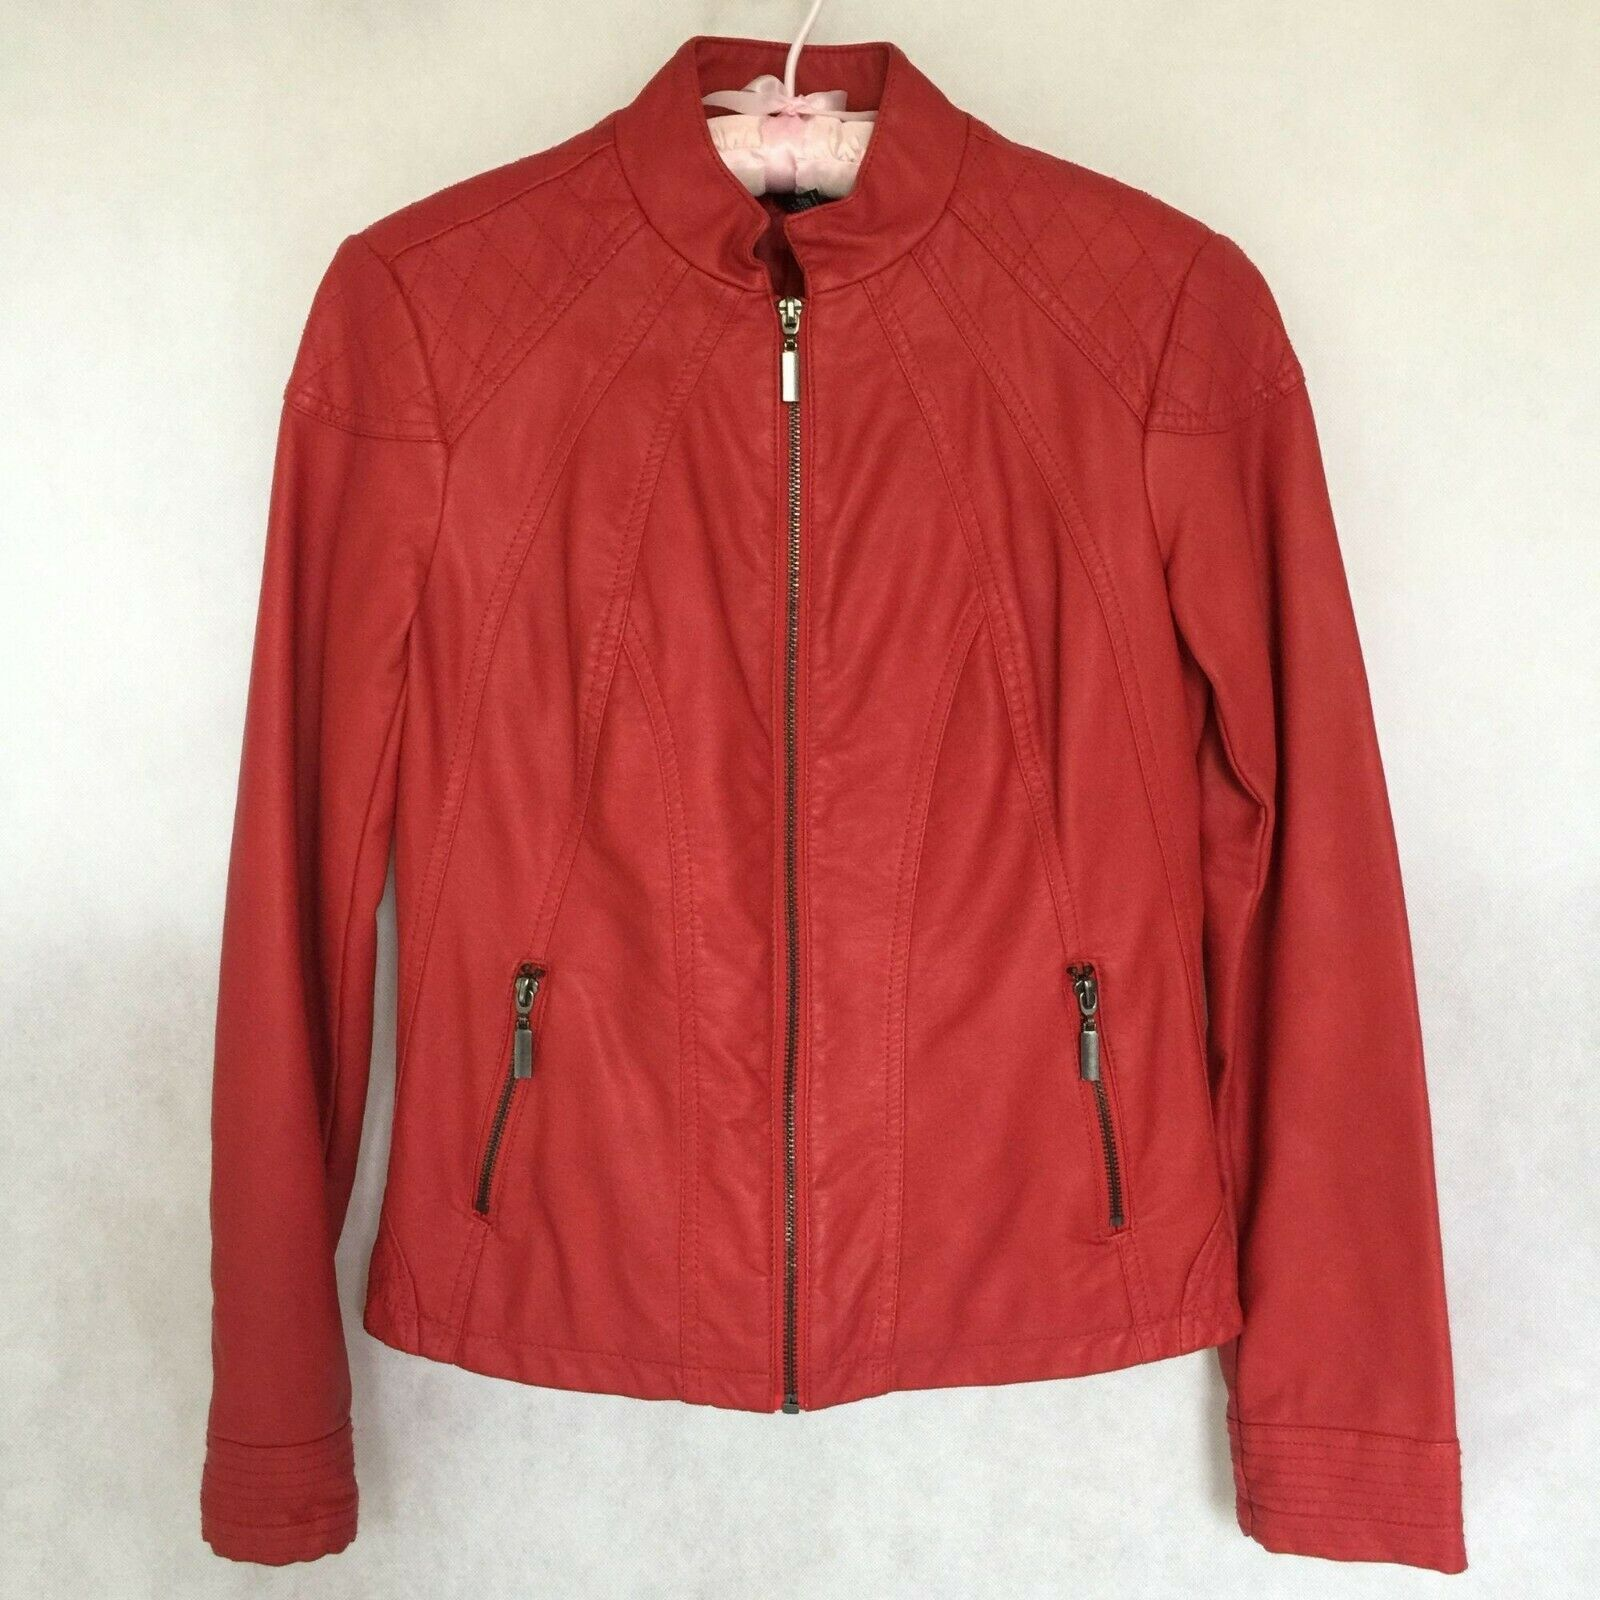 Primary image for Alfani Red Faux Leather Vegan Moto Bomber Jacket Size XS Lined Pockets Zip Up